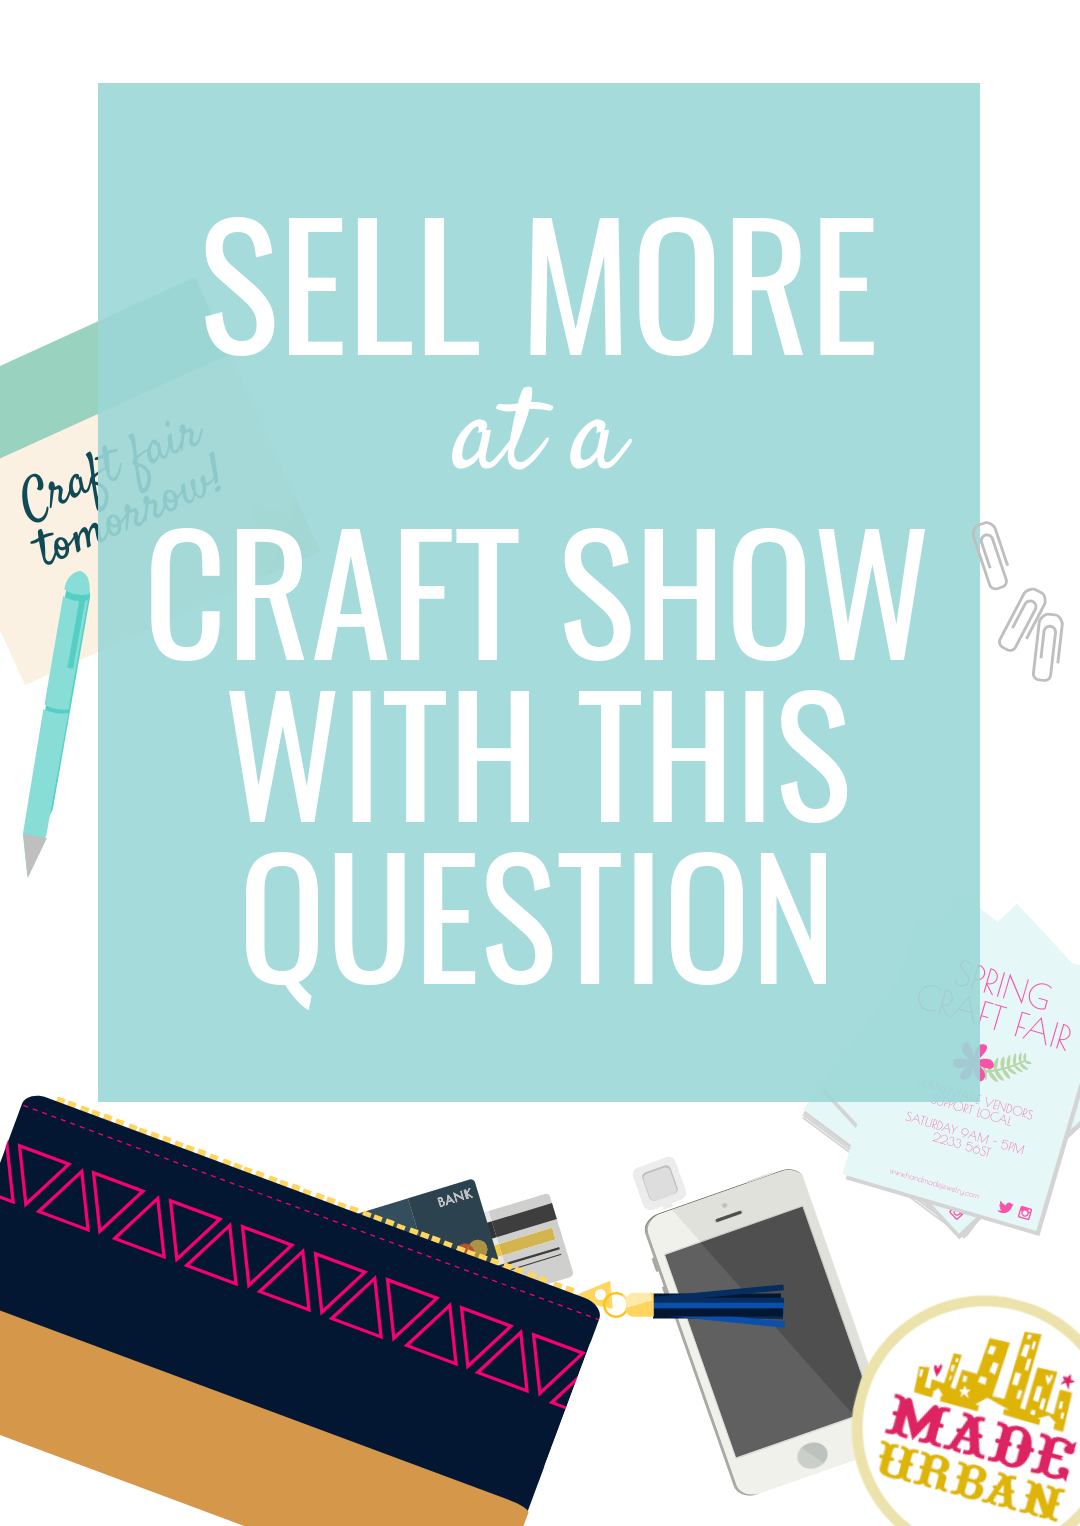 Hot Craft Show Sellers